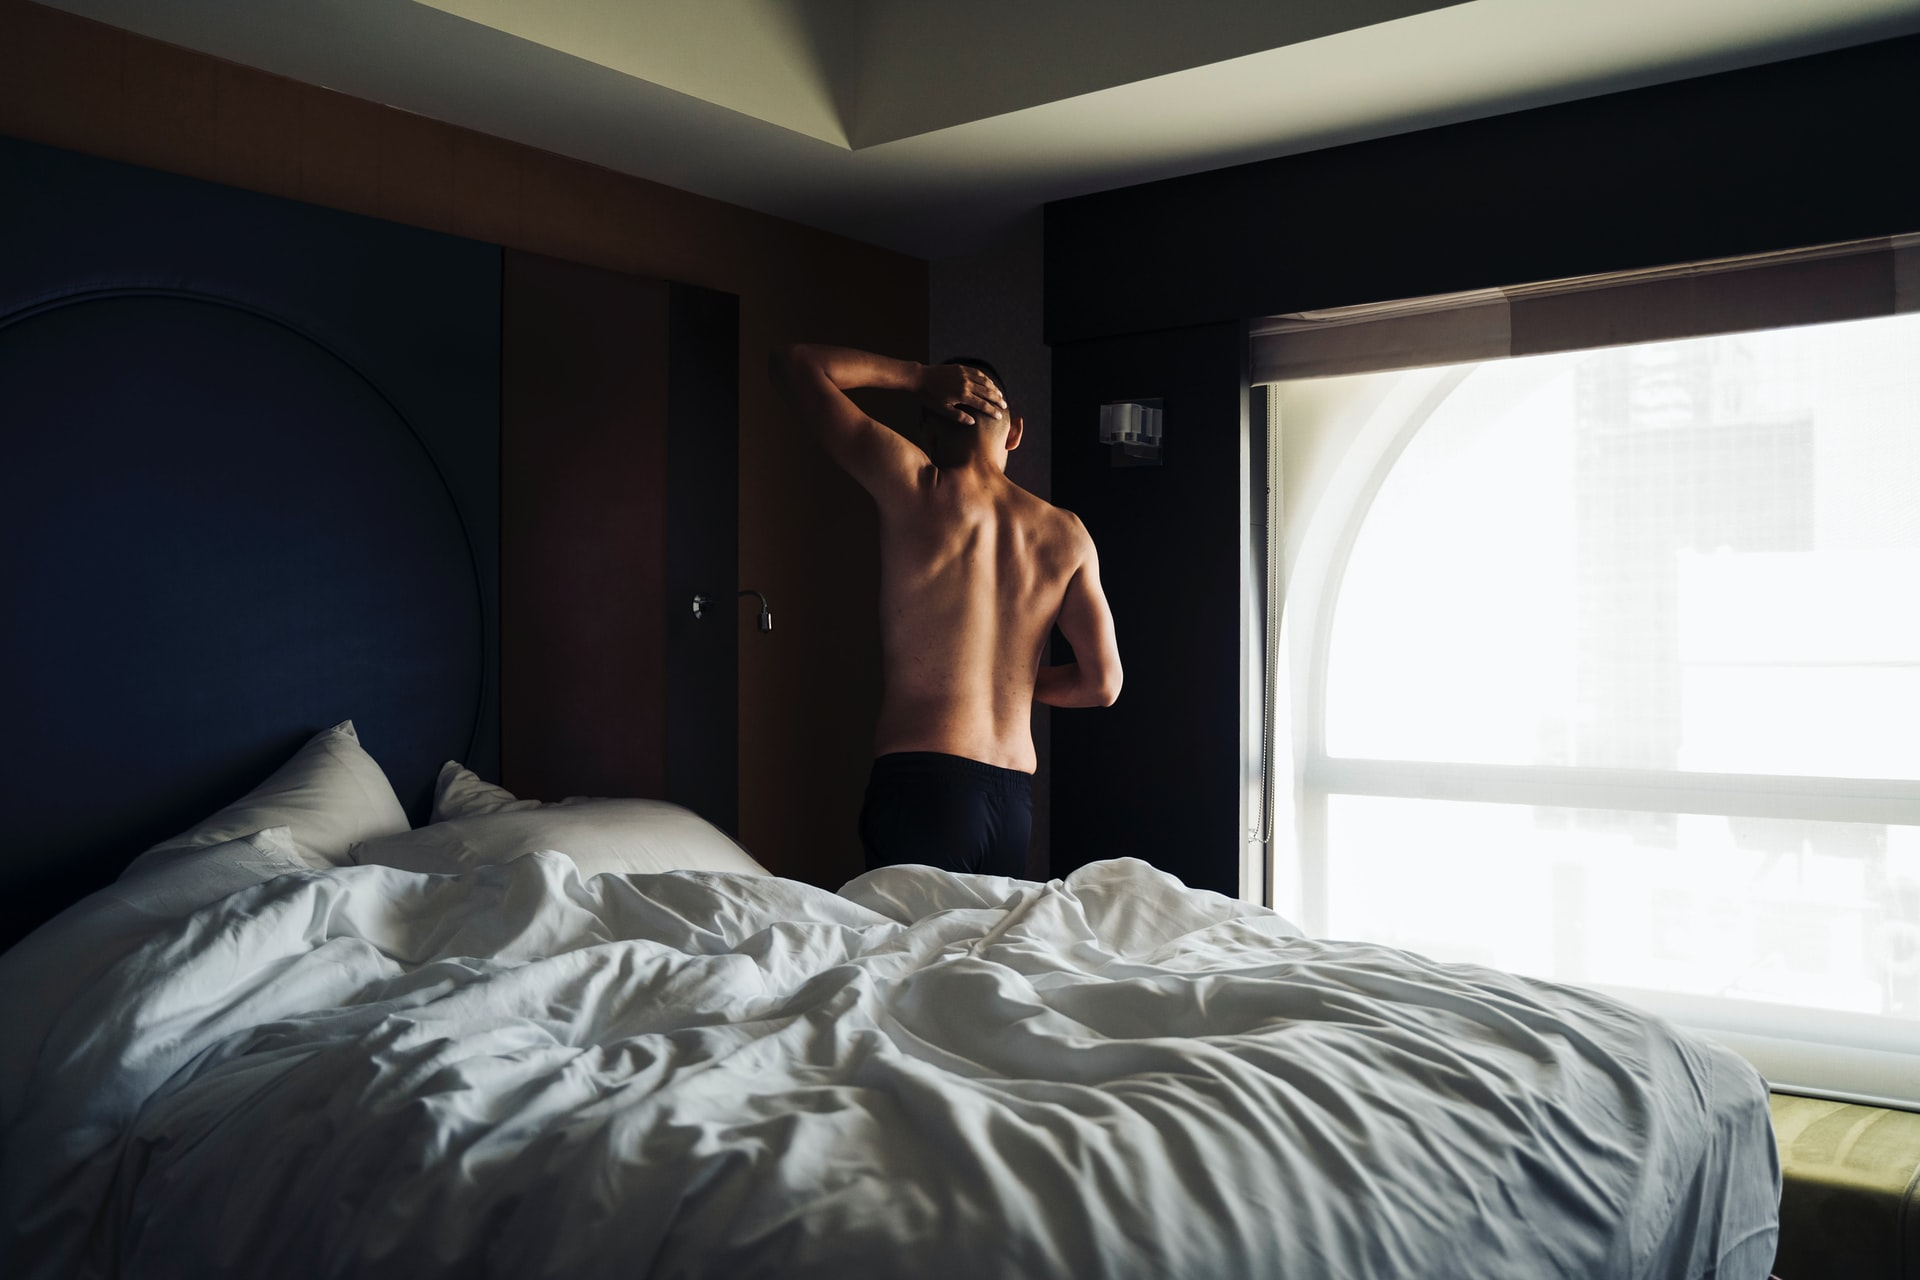 A man waking up from bed